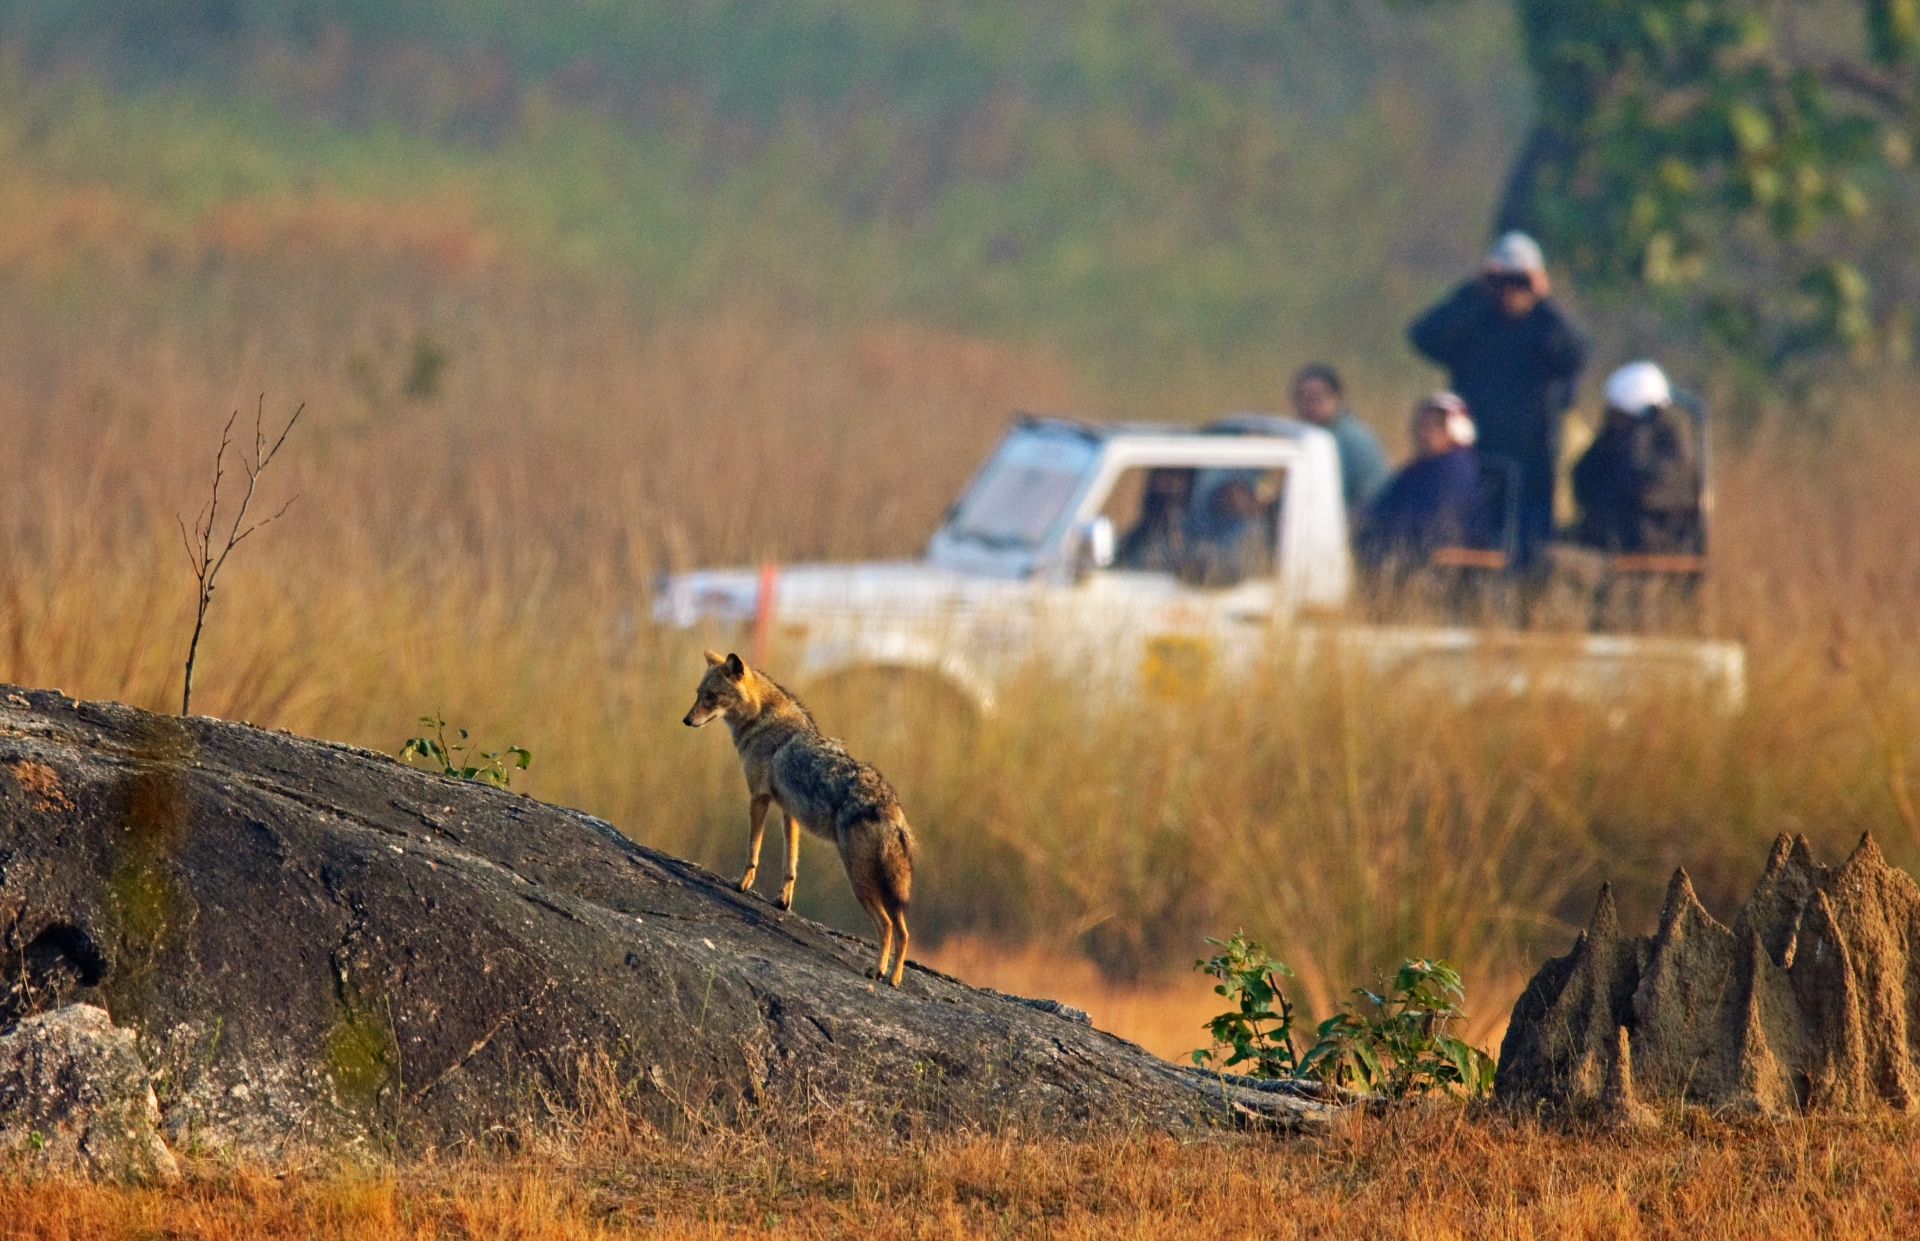 Caption: The short-statured Indian jackal often waits among tall grasses, hoping to chance upon a meal. They are predators as well as scavengers, hunting small rodents and cleaning up after a tiger or dhole's kill.